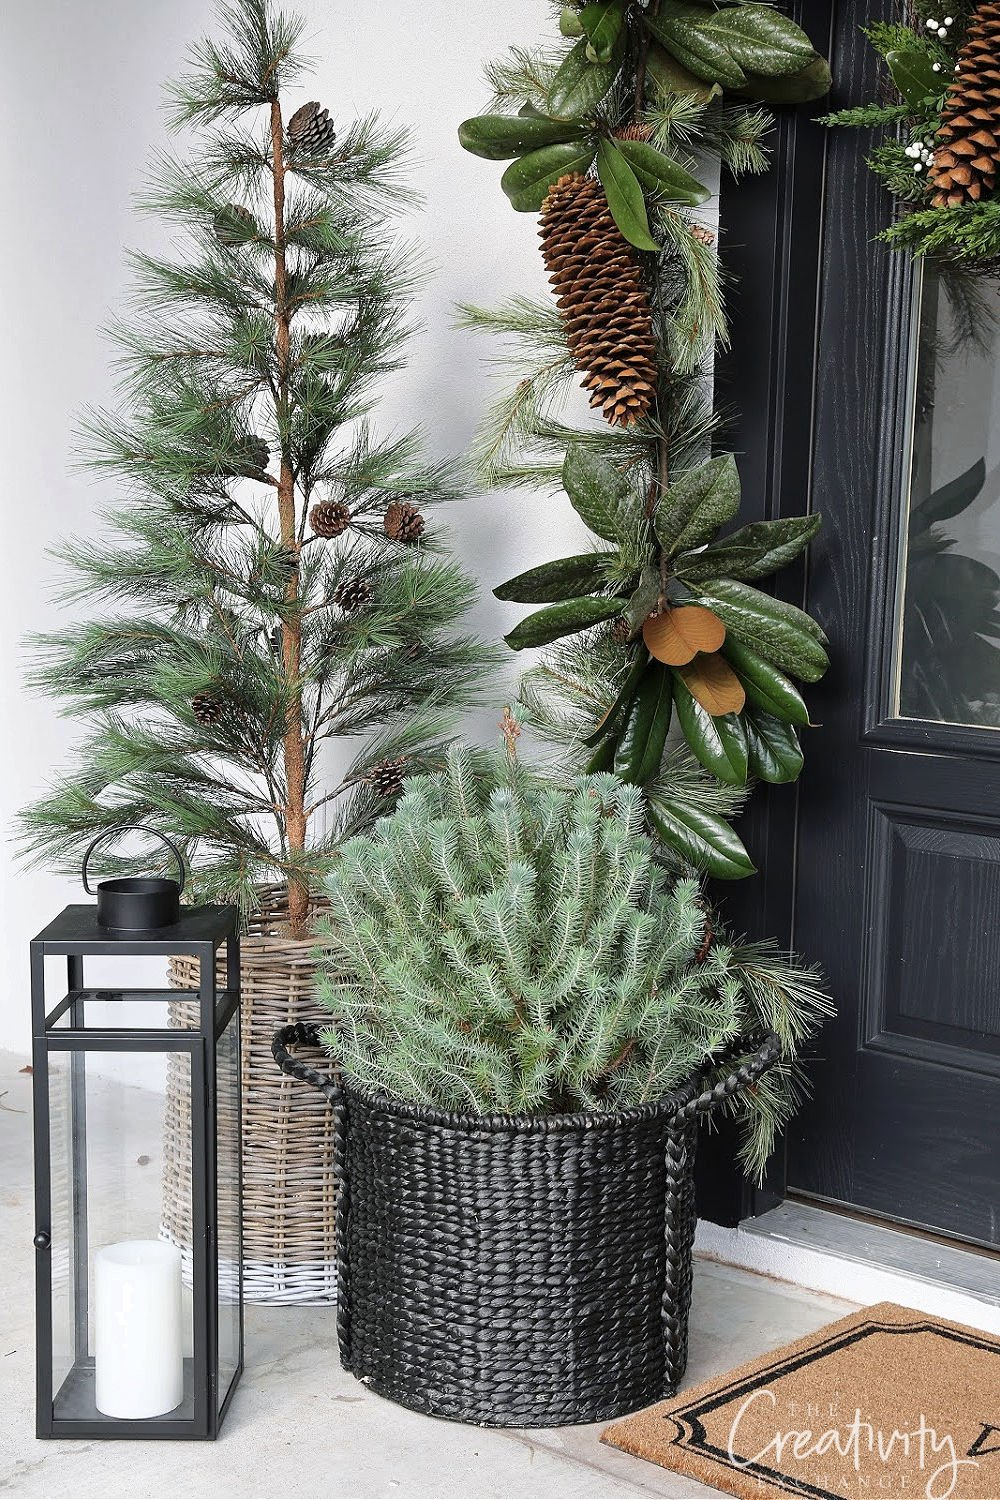 Basket of Christmas trees on front porch